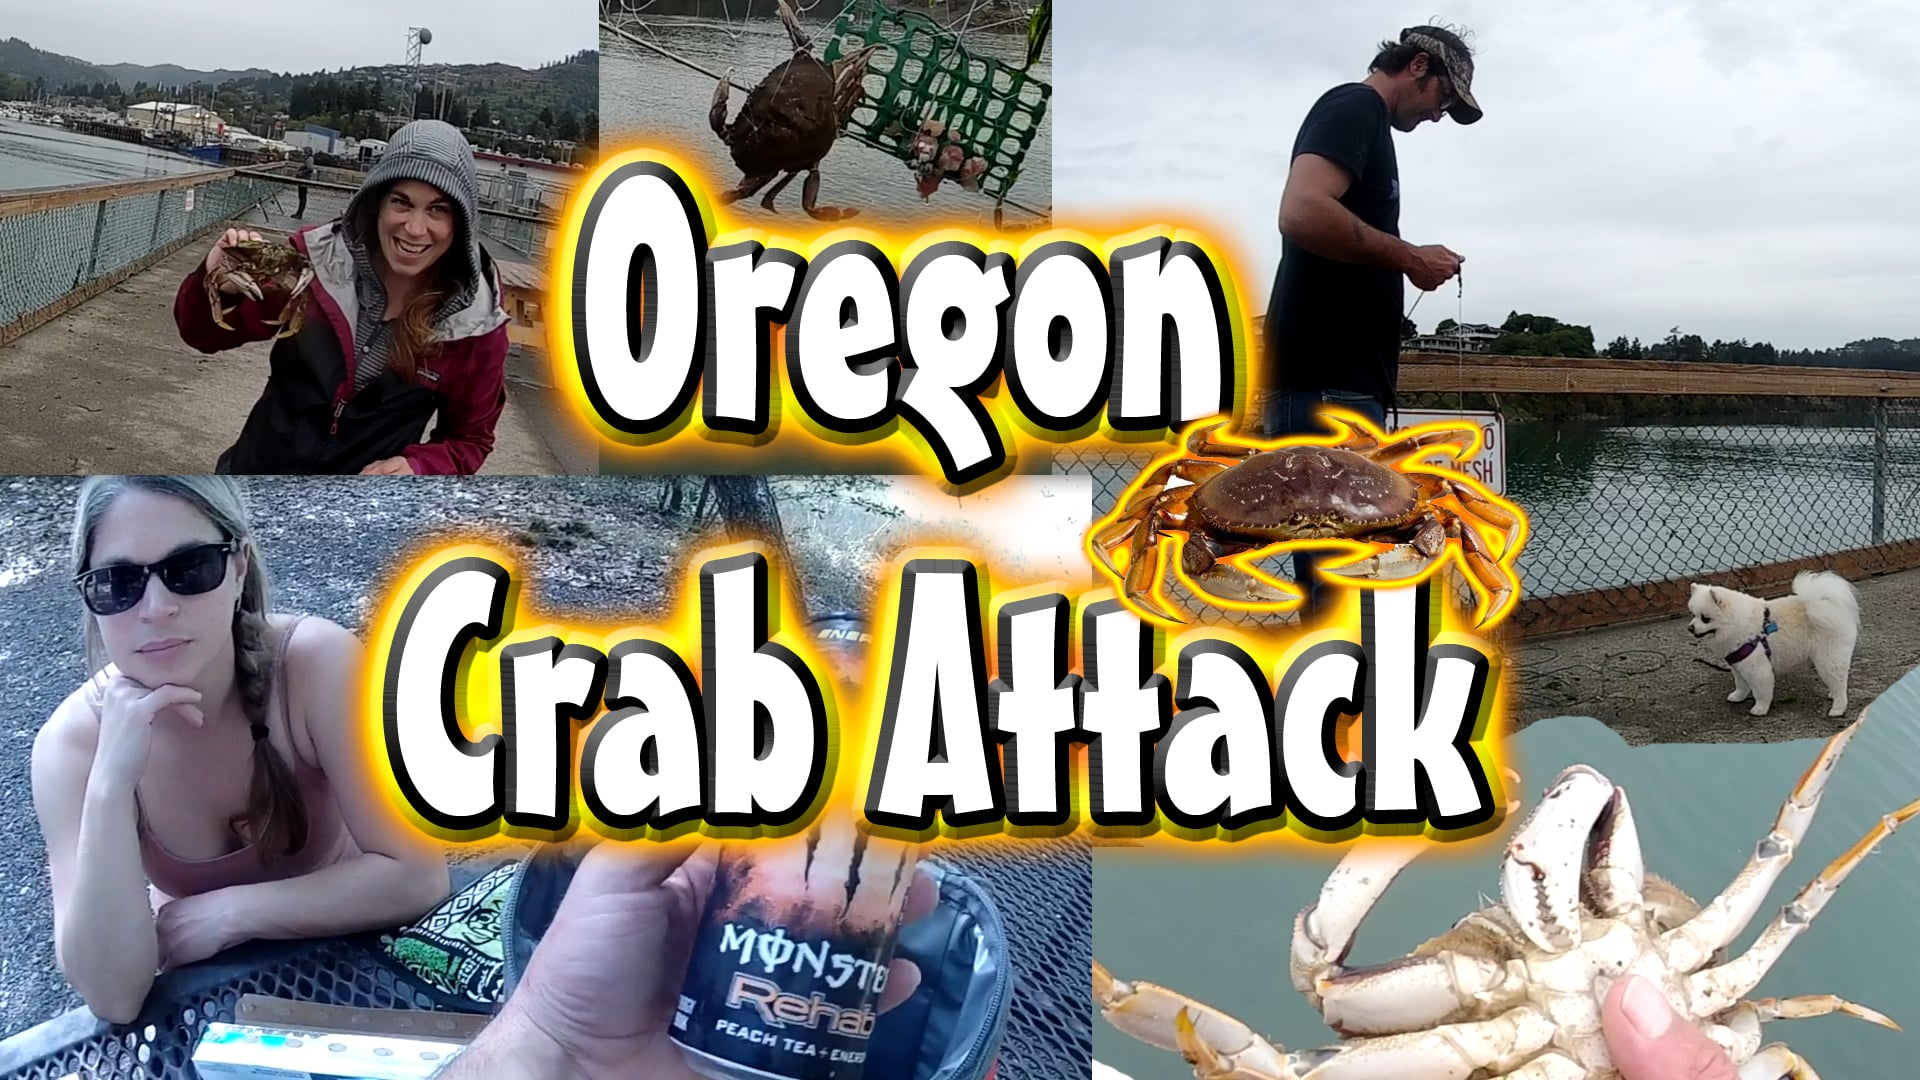 Catching crab on a budget in OR